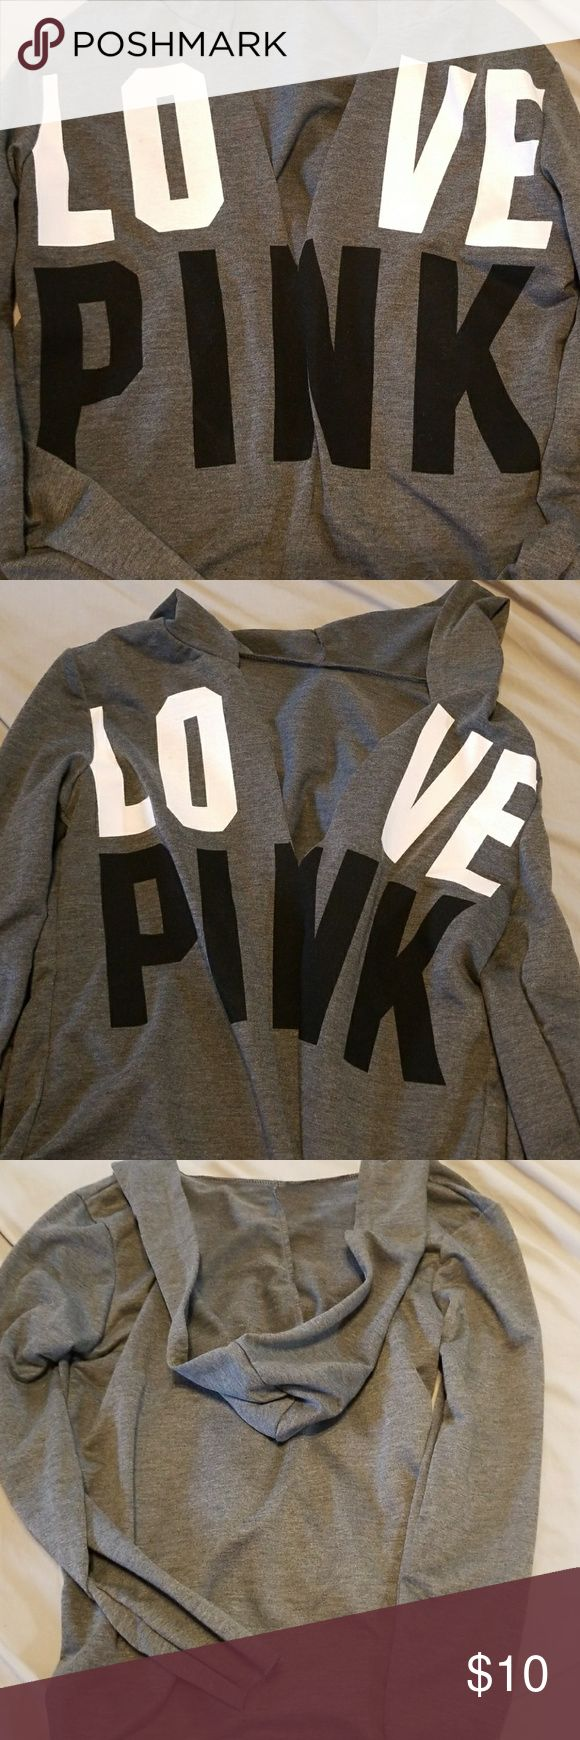 Victoria secret thin hoodie. Low cut v Thin VS. Hoodie never been worn, just too small for me. Very cute!! PINK Victoria's Secret Tops Sweatshirts & Hoodies